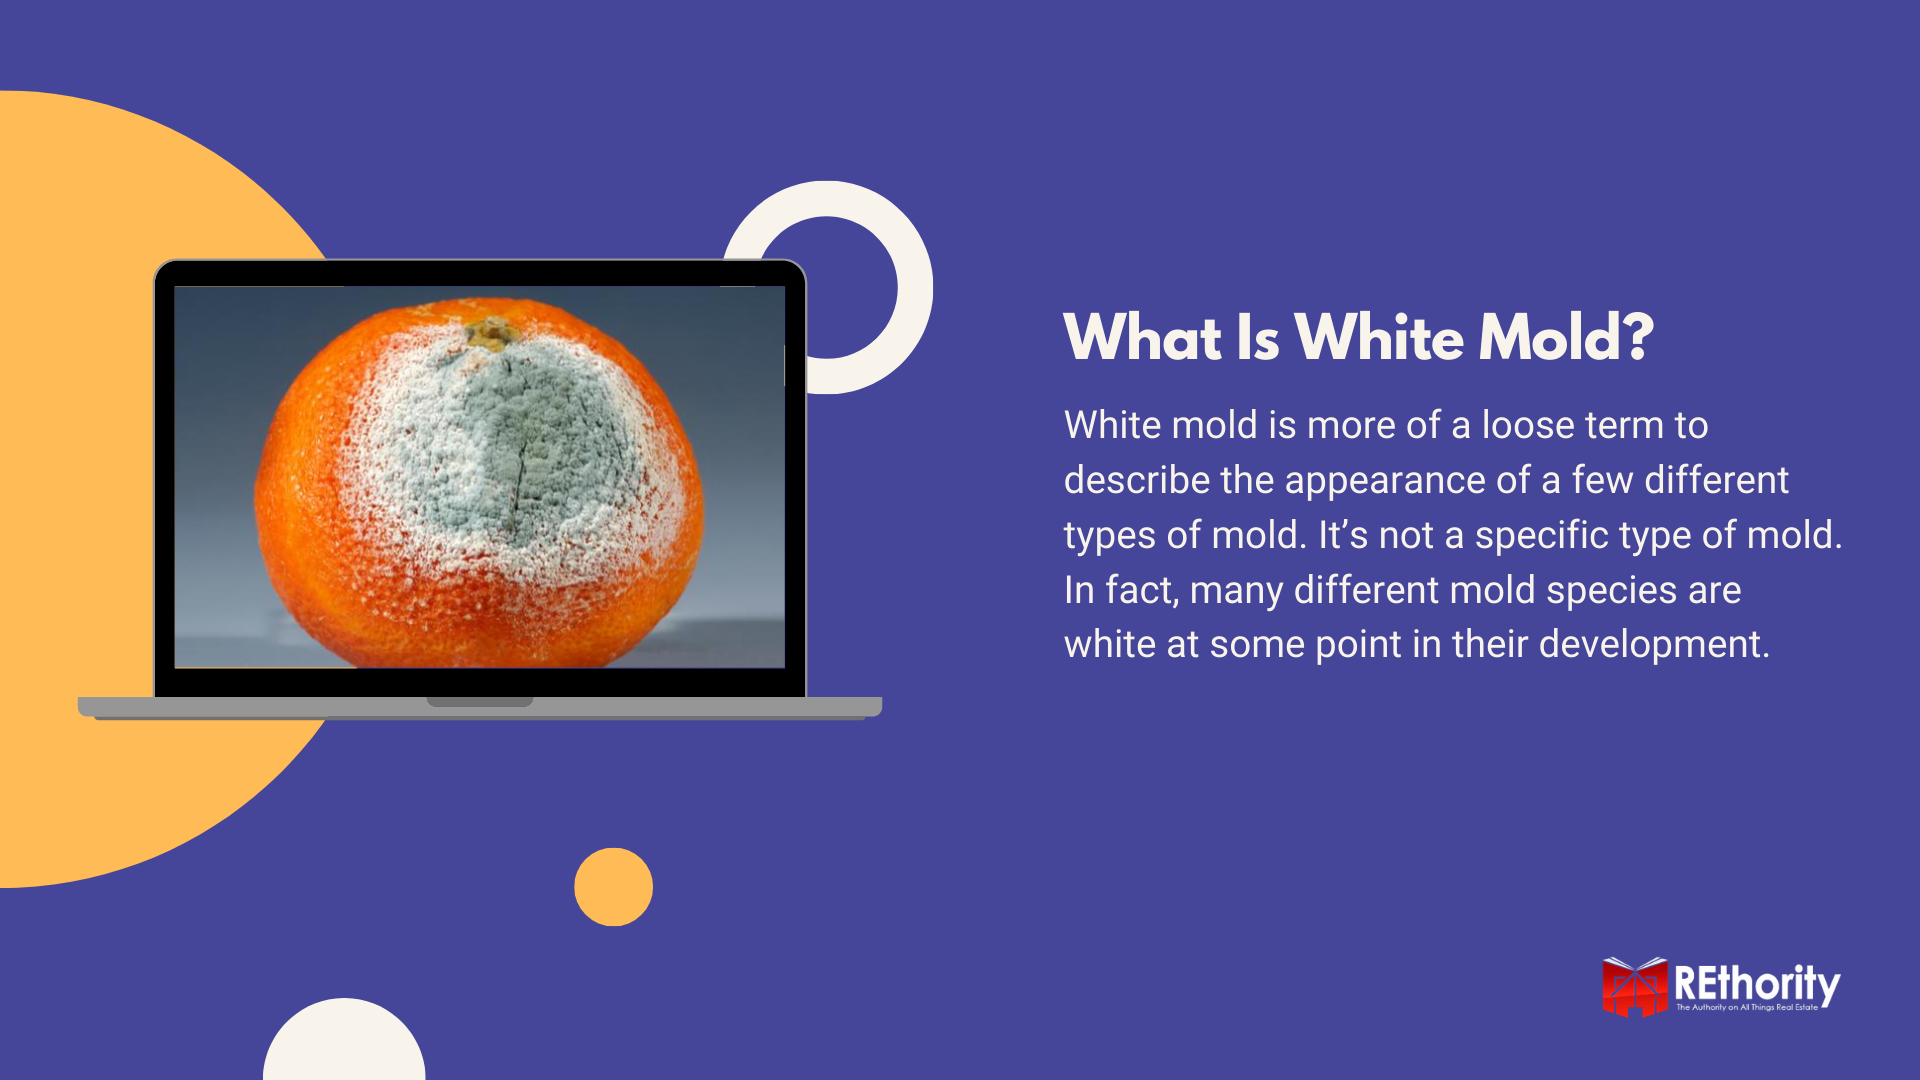 What is White Mold graphic featuring penicillium growing on an orange displayed on a computer screen alongside a description answering the question